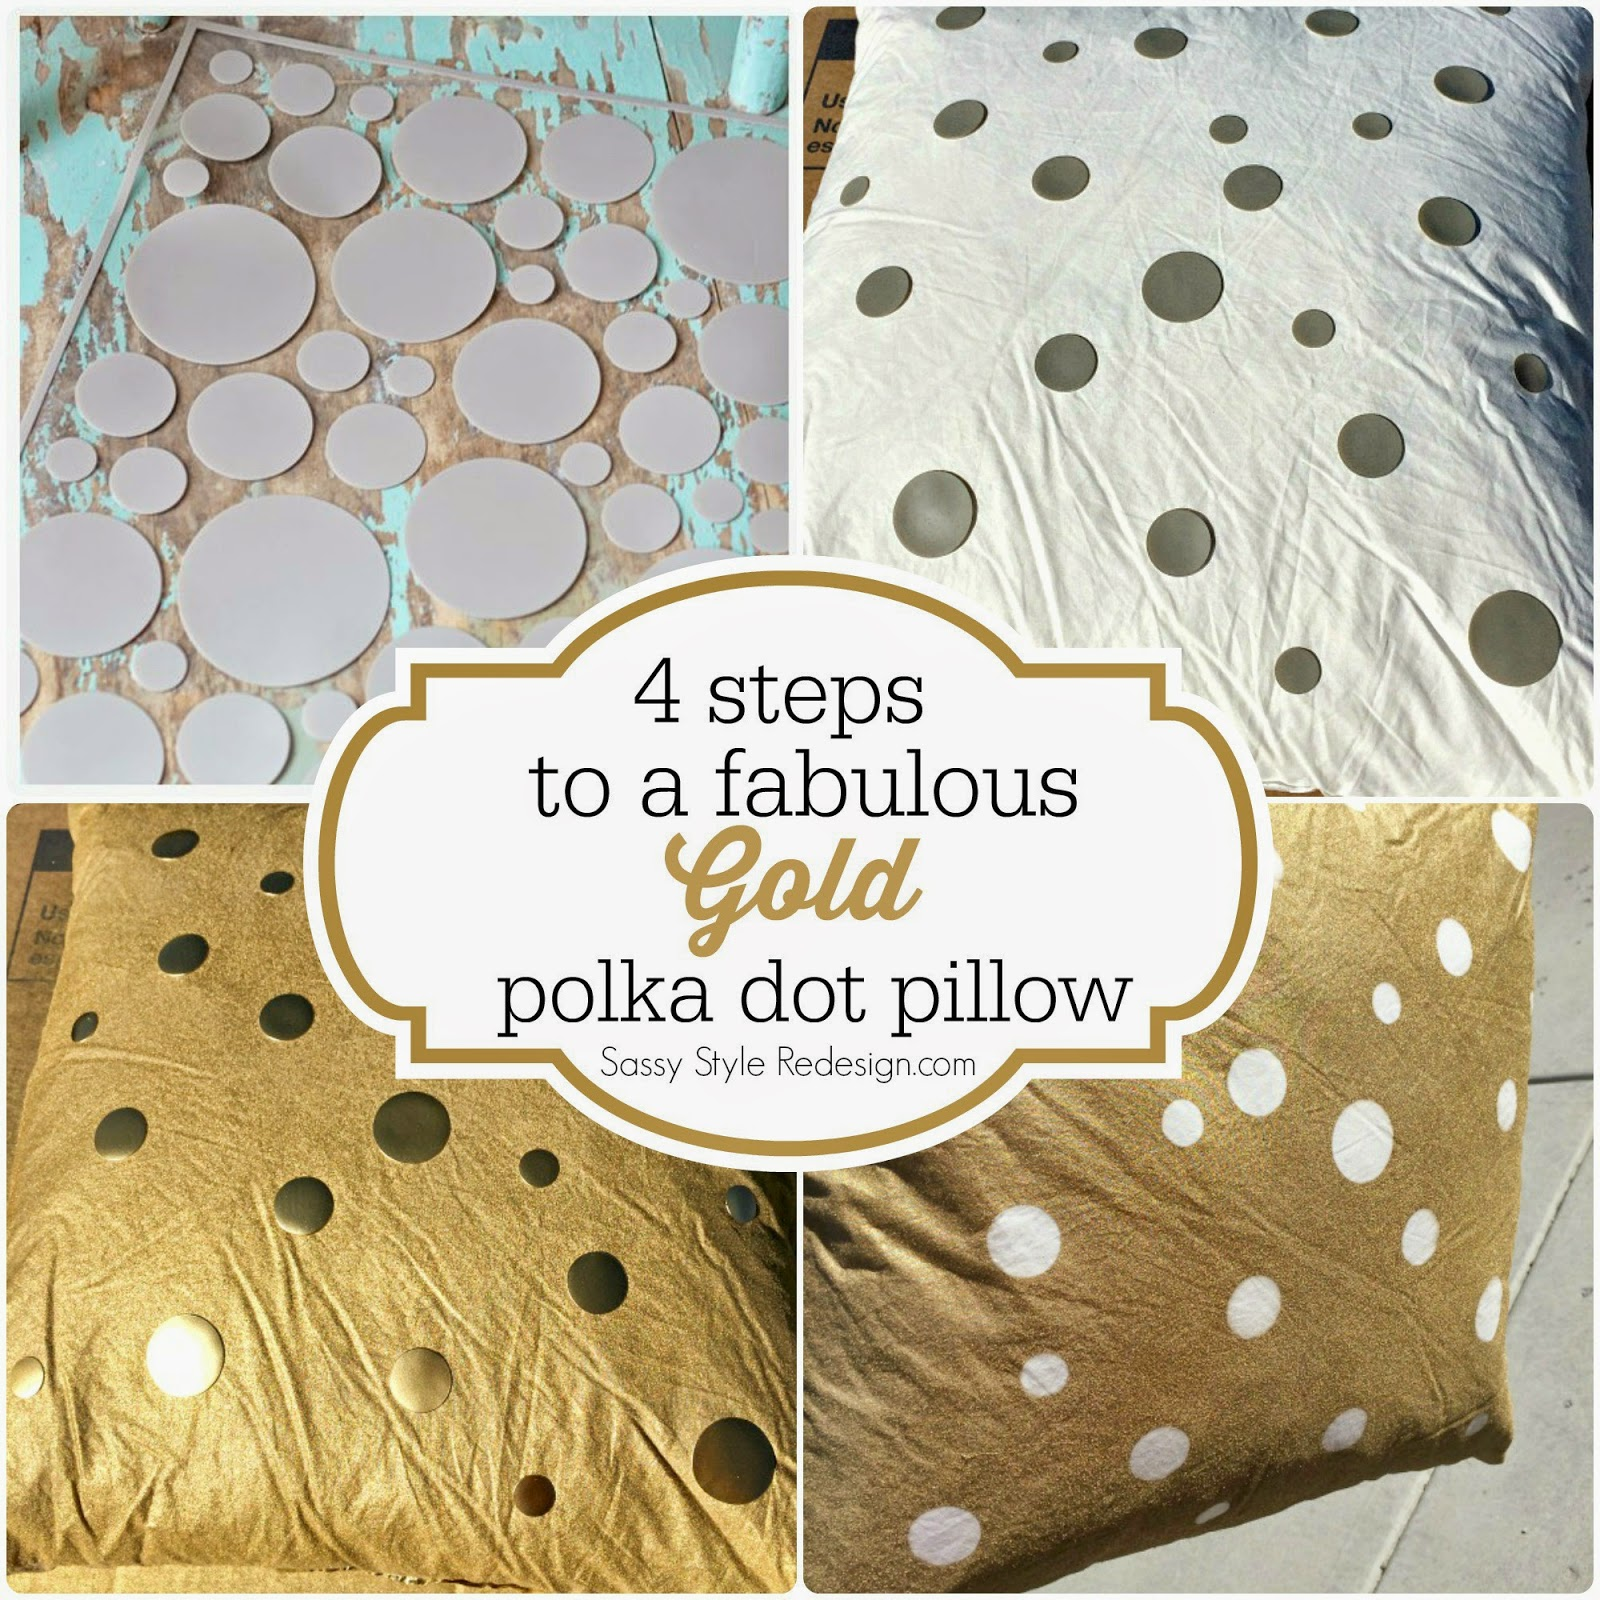 http://www.sassystyleredesign.com/2014/04/diy-gold-spray-painted-pillow.html